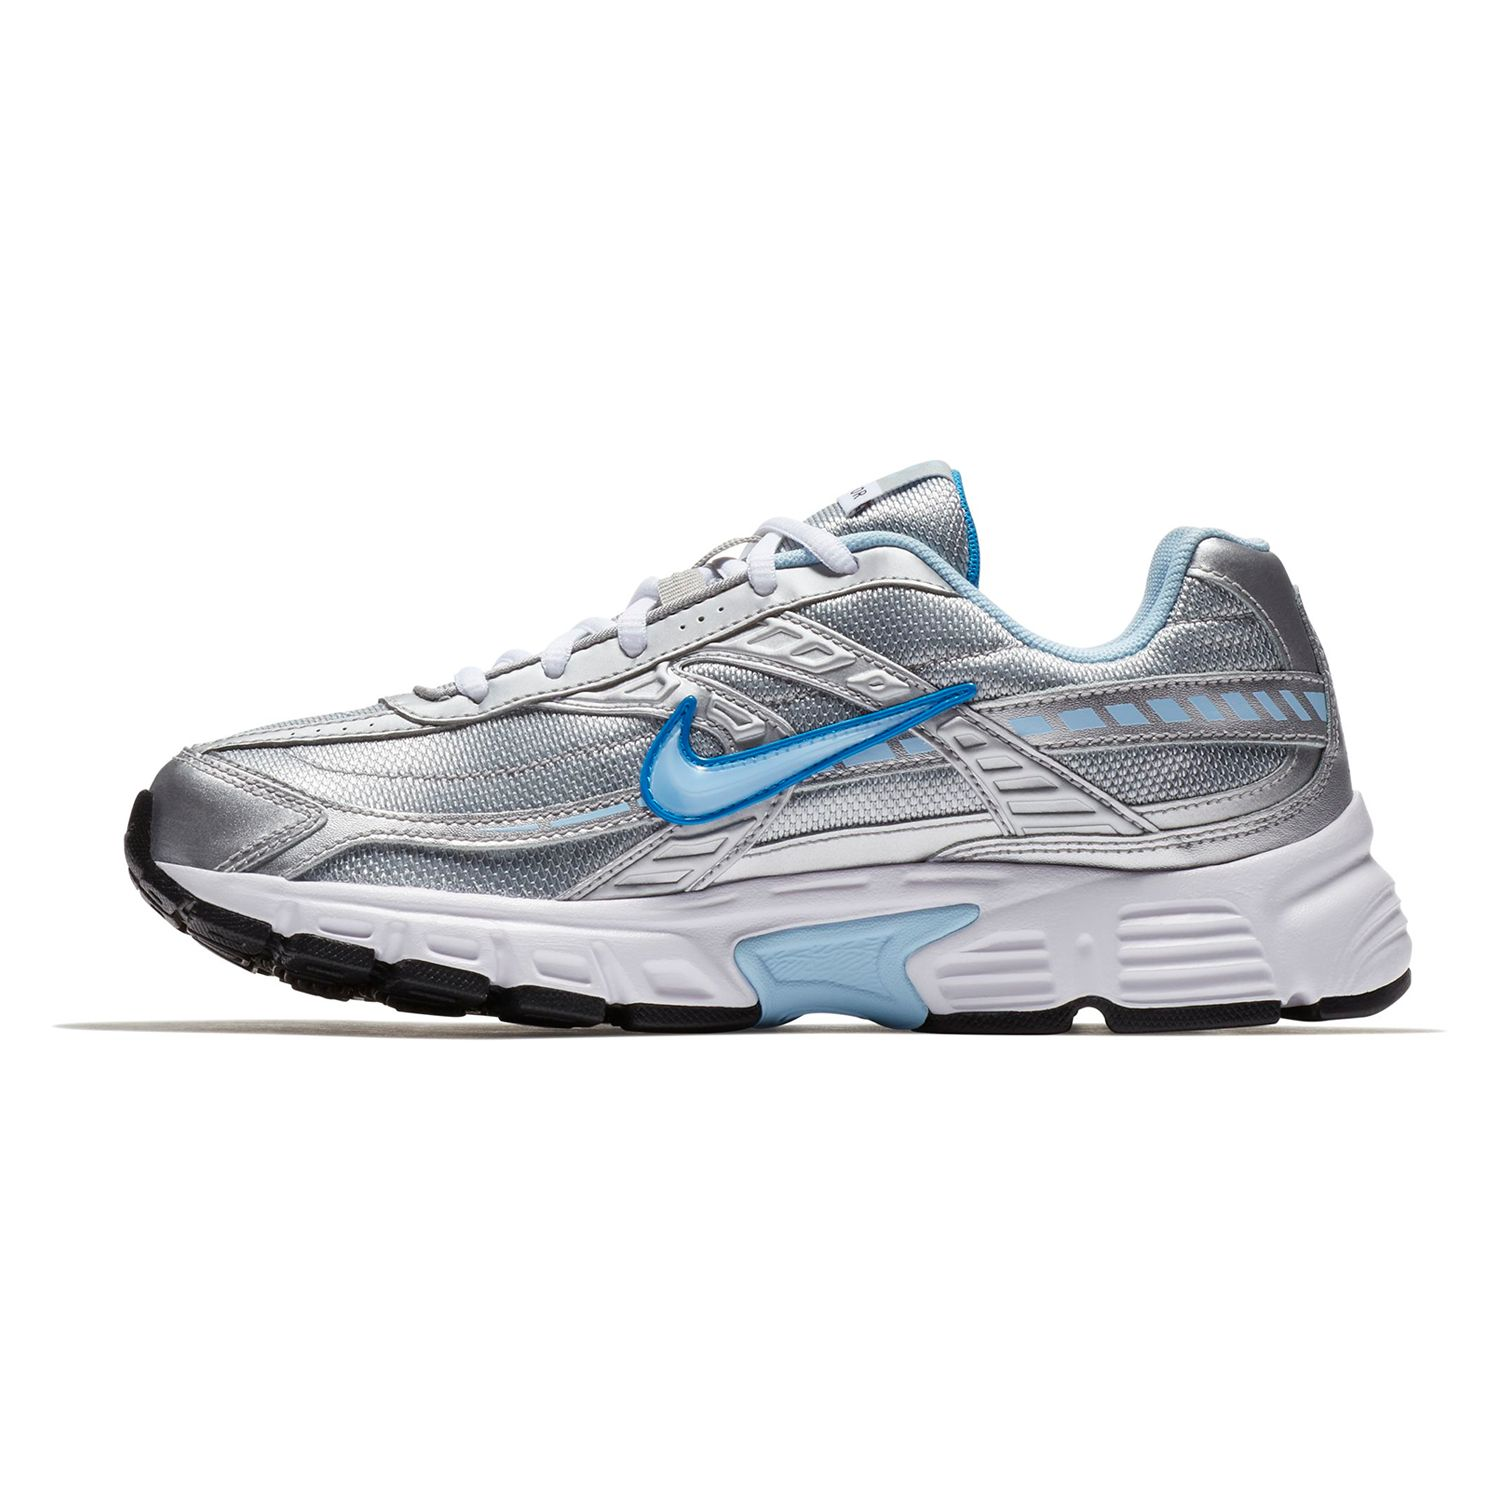 70f00cfa1f8 Womens Nike Wide Shoes